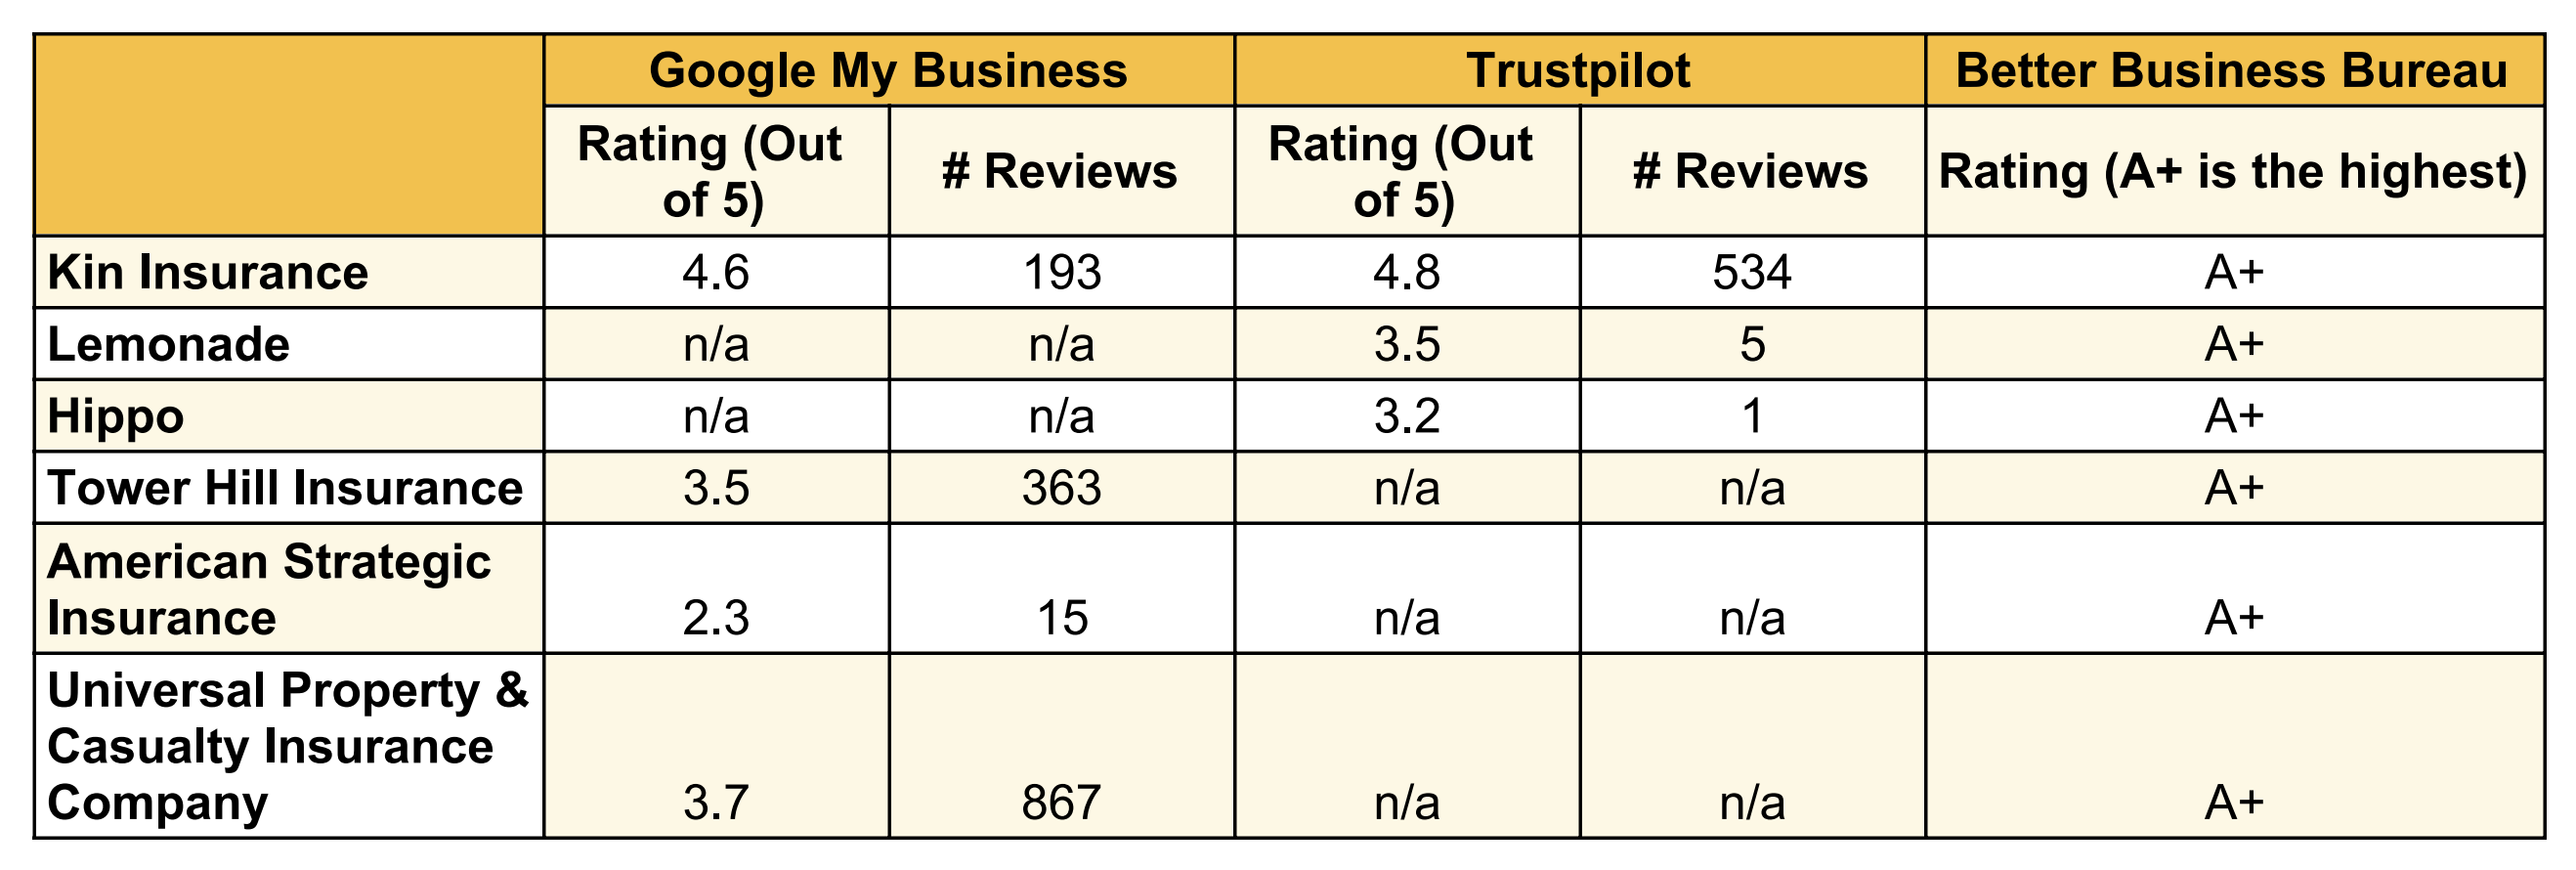 Customer review comparison chart for Kin Insurance, Lemonade, Hippo, Tower Hill, and others.